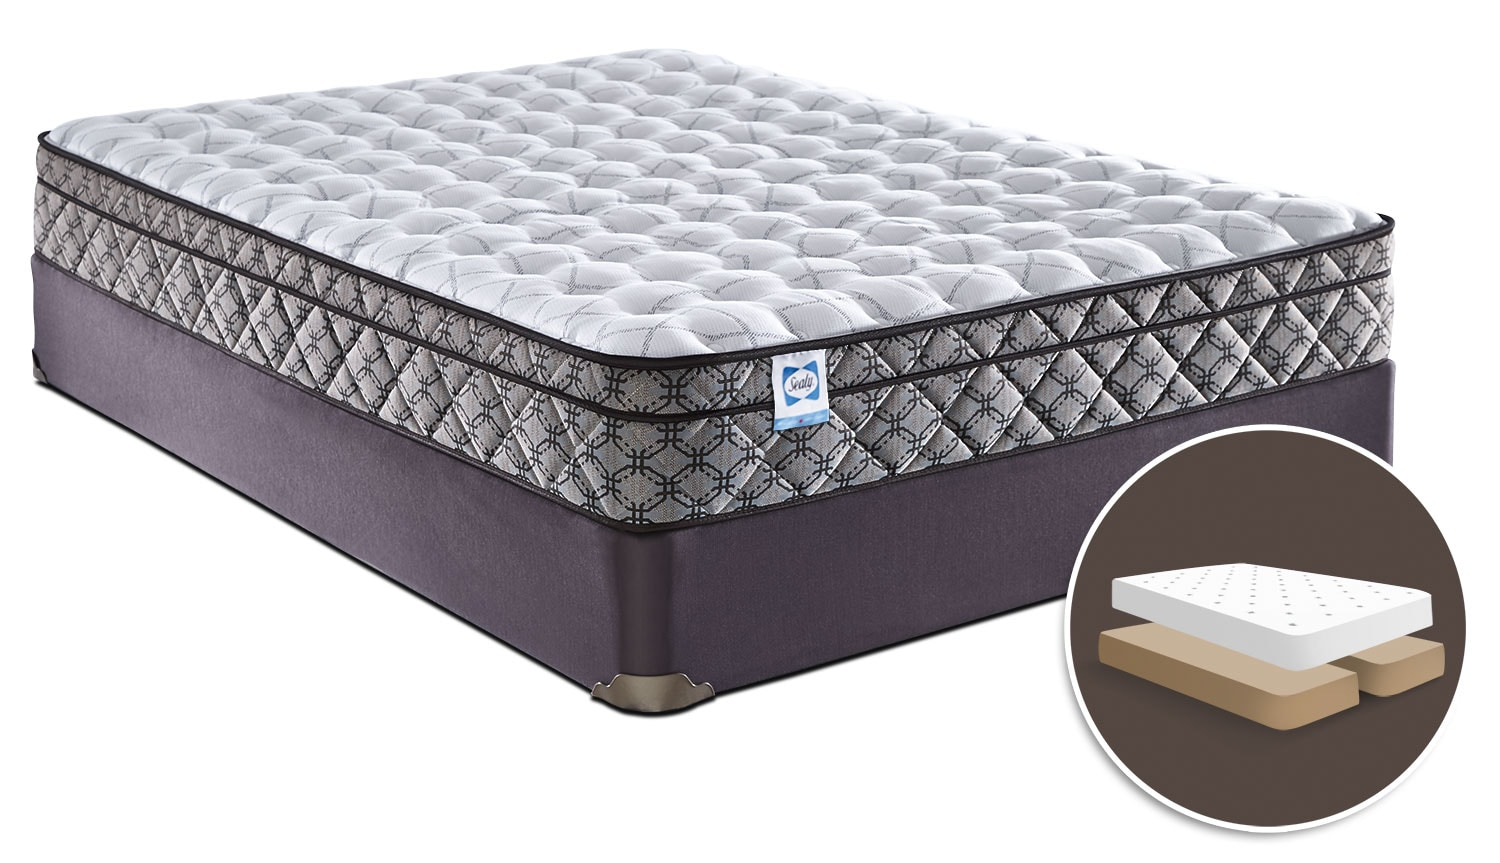 Mattresses and Bedding - Sealy Bellcroft Euro-Top Firm Queen Mattress with Split Boxspring